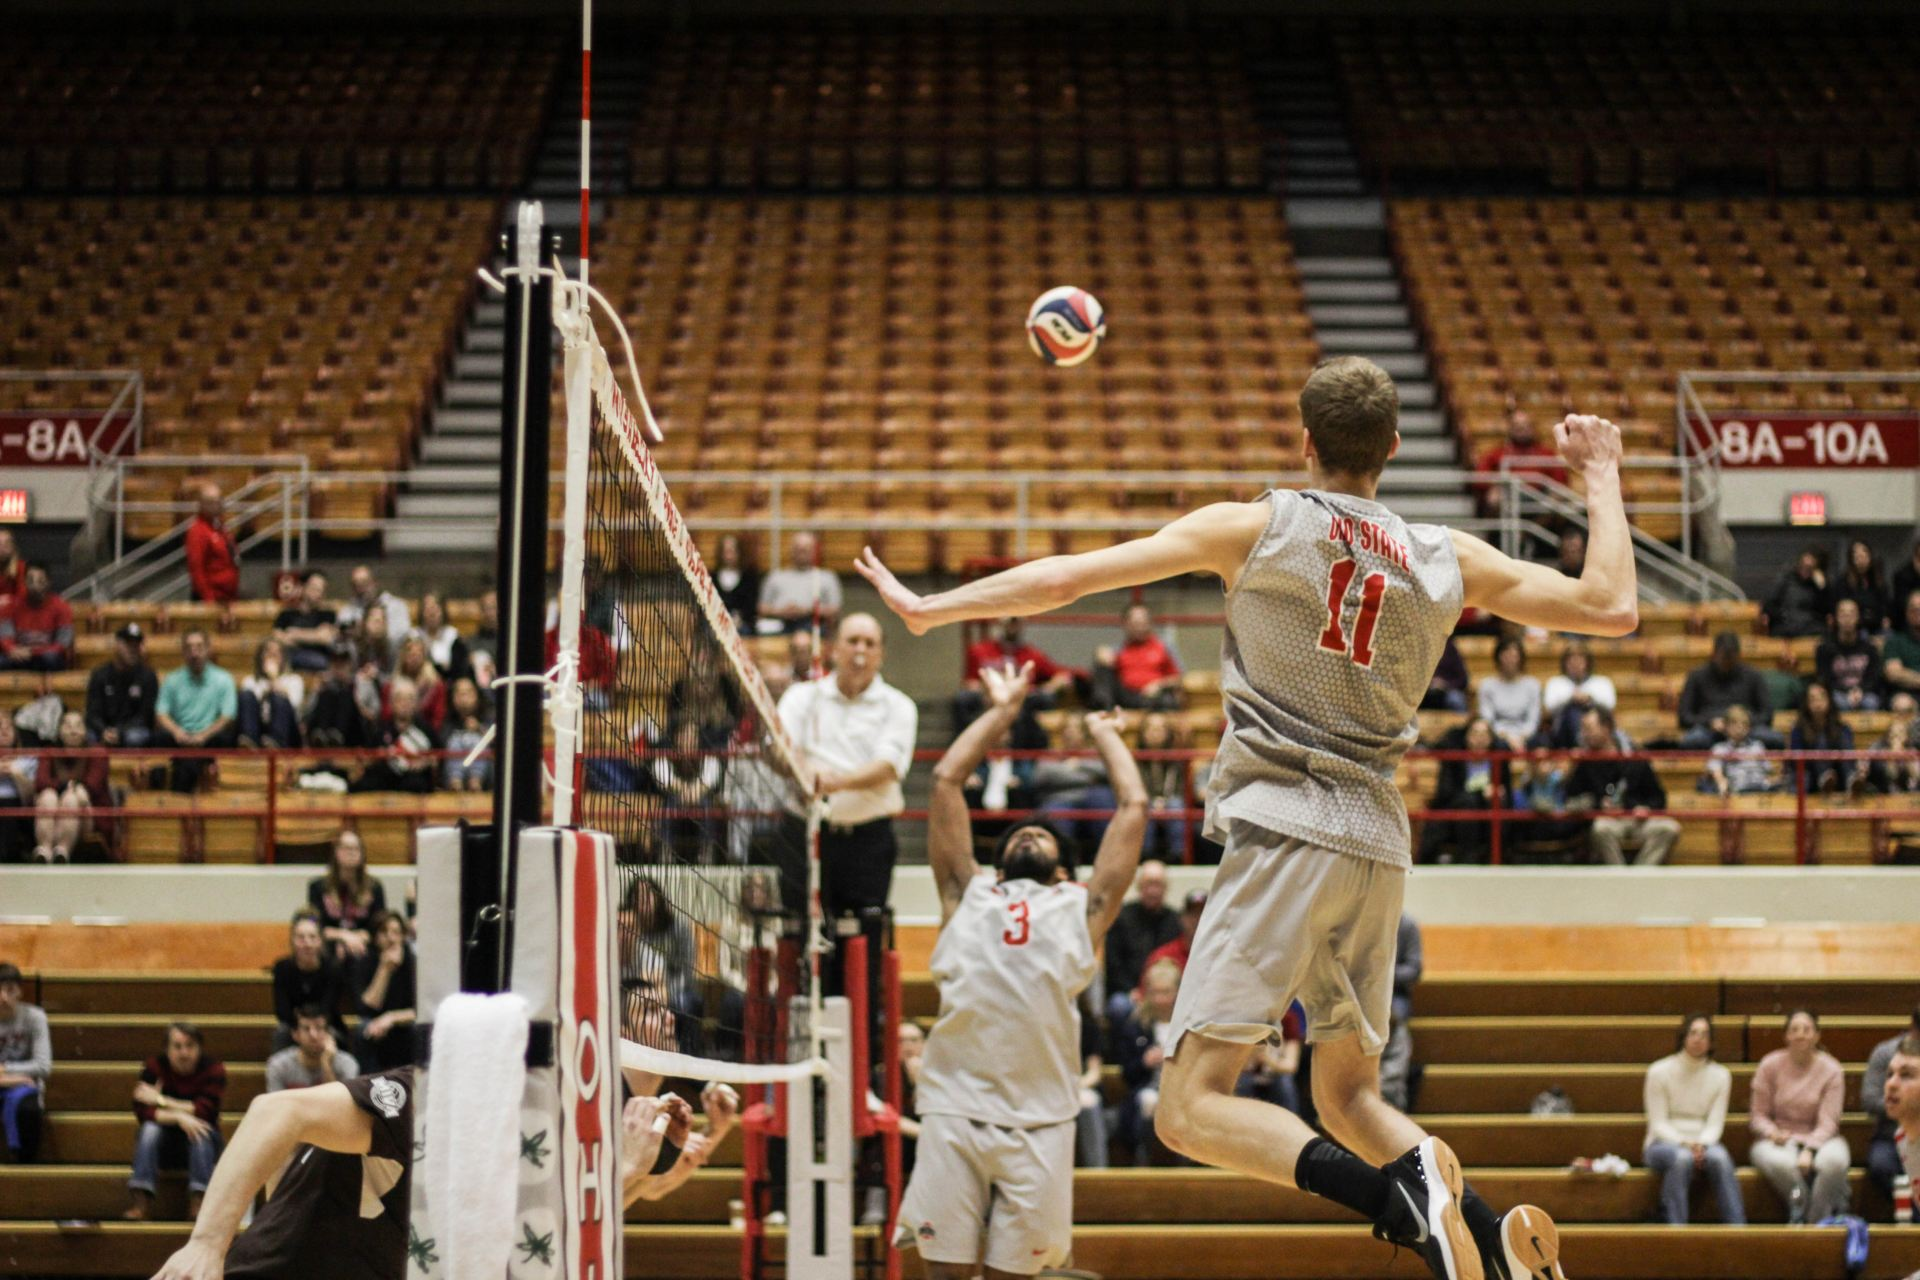 Mens volleyball ohio state advances to conference championship redshirt junior middle blocker blake leeson 11 prepares to spike the ball against quincy university at st john arena on feb 18 2018 publicscrutiny Images